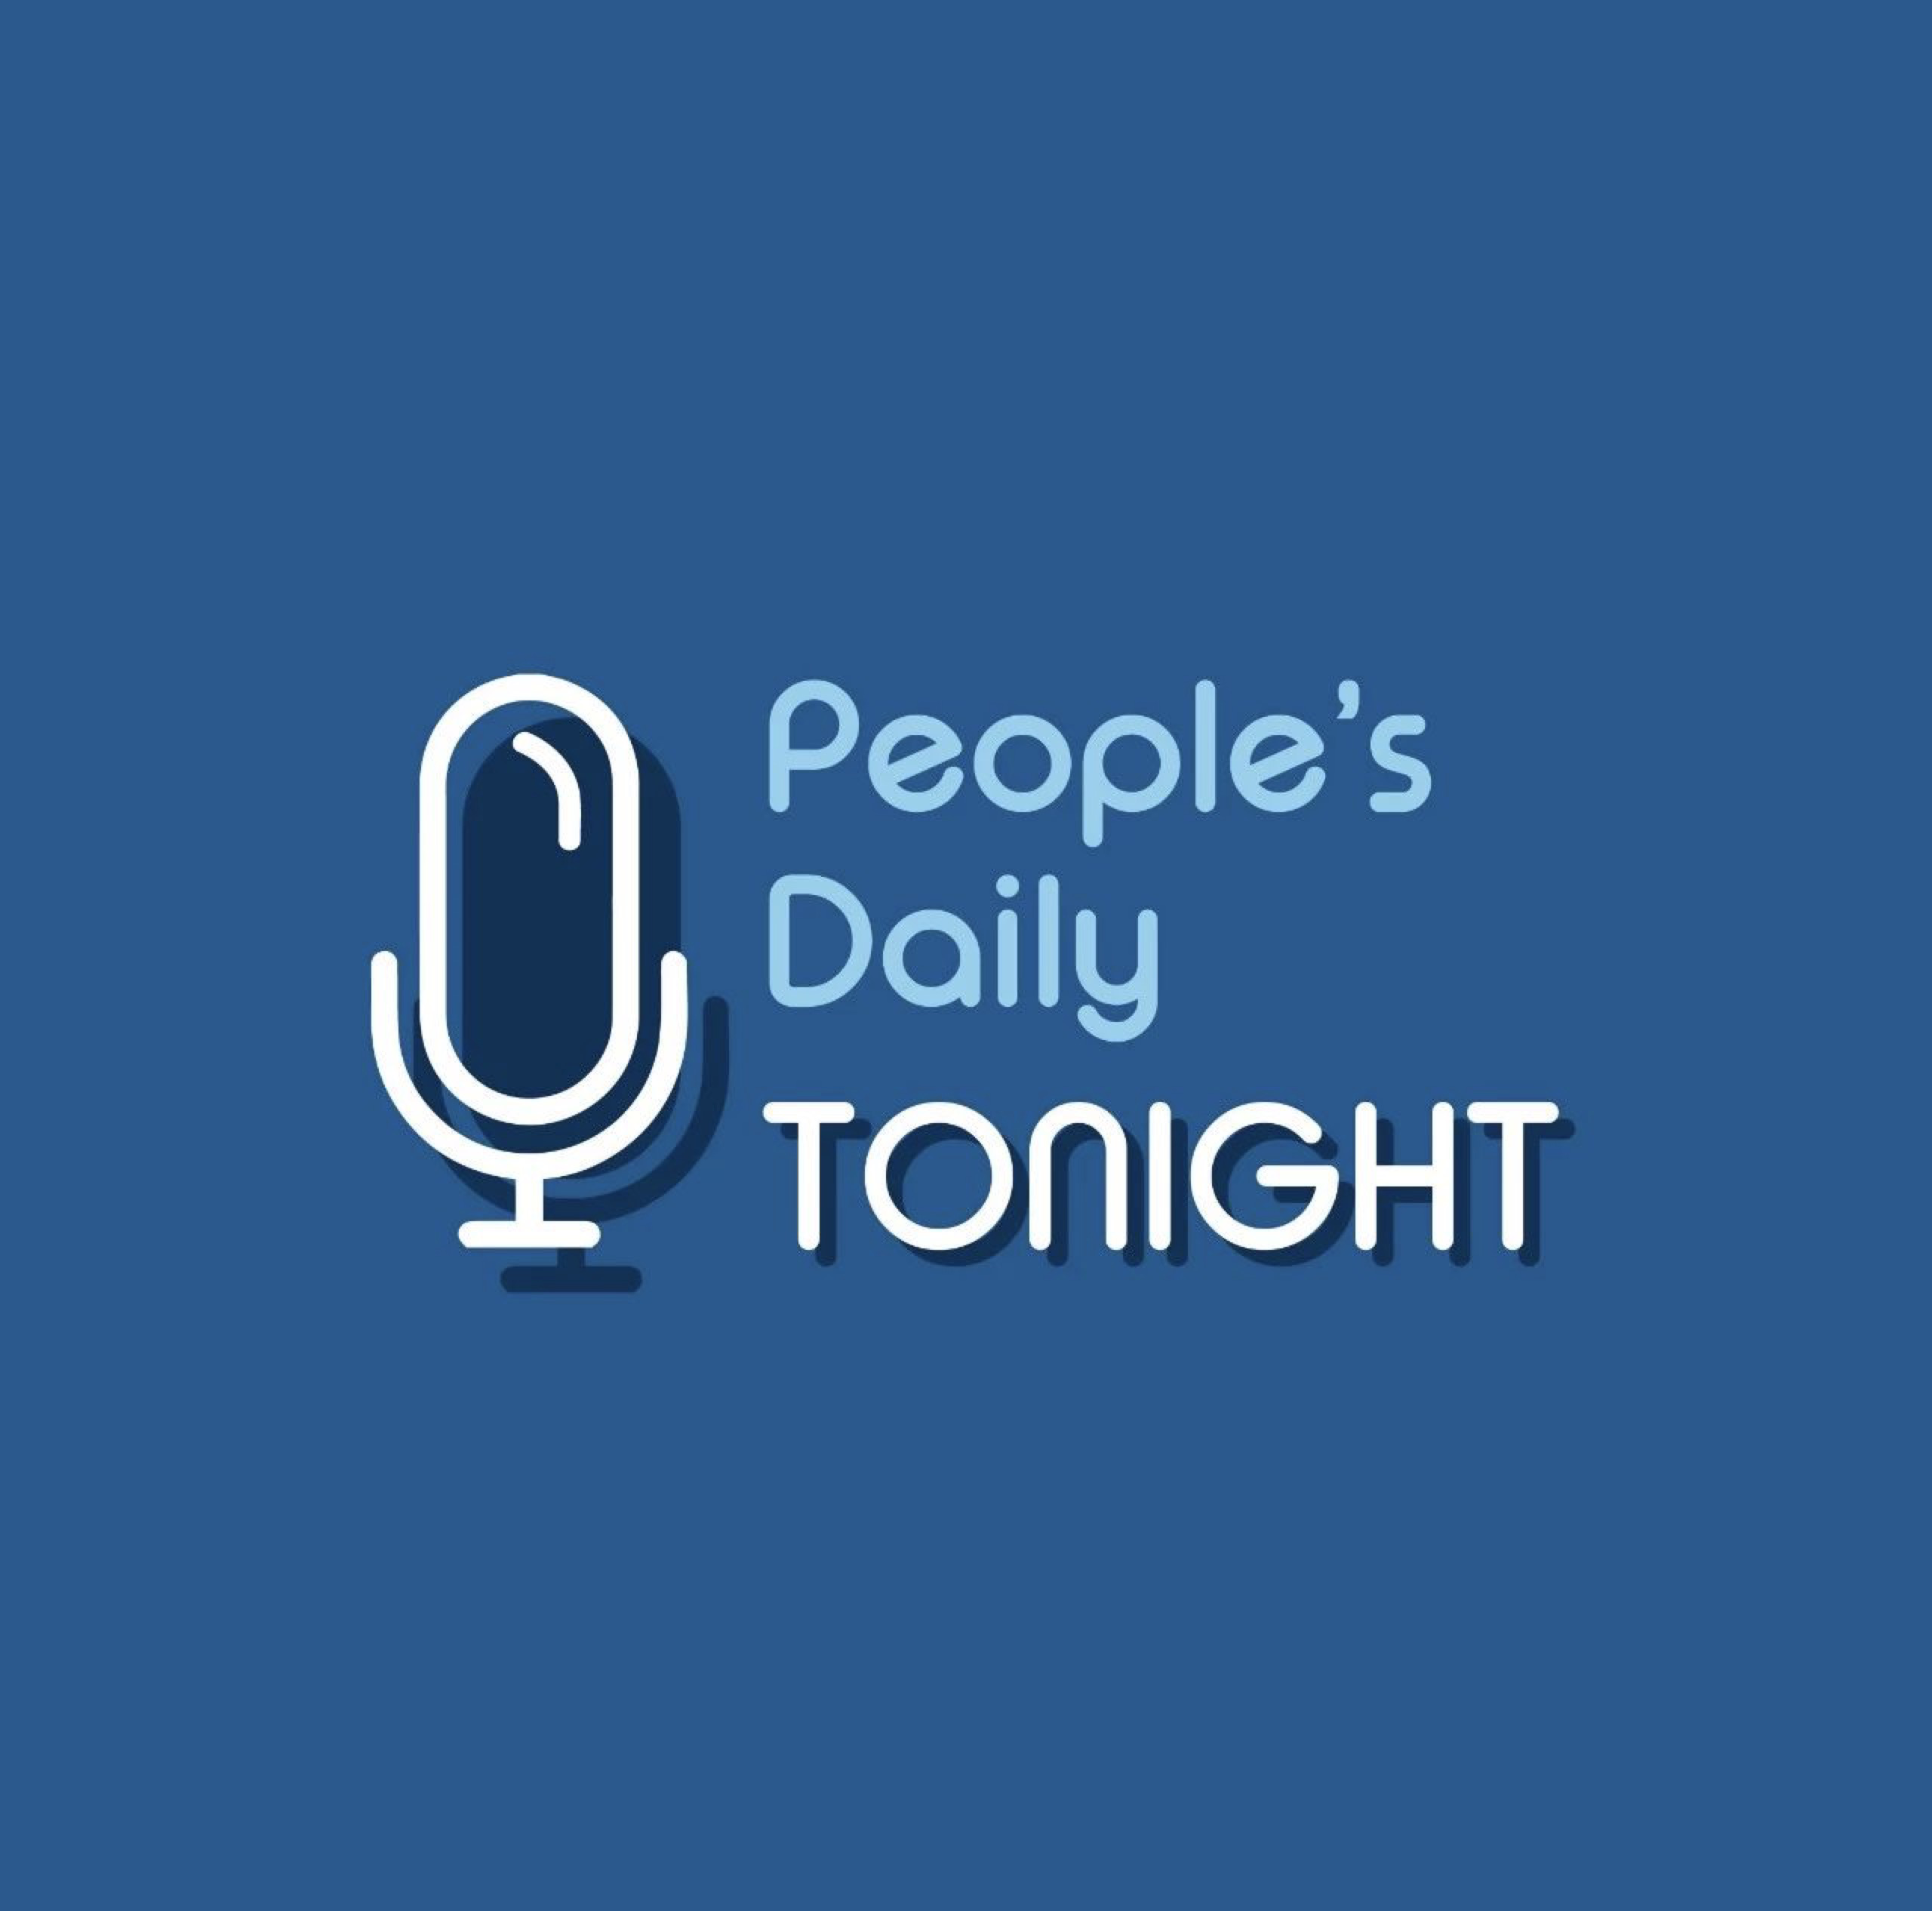 People's Daily Tonight: Podcast News (9/12/2018 Wed.)